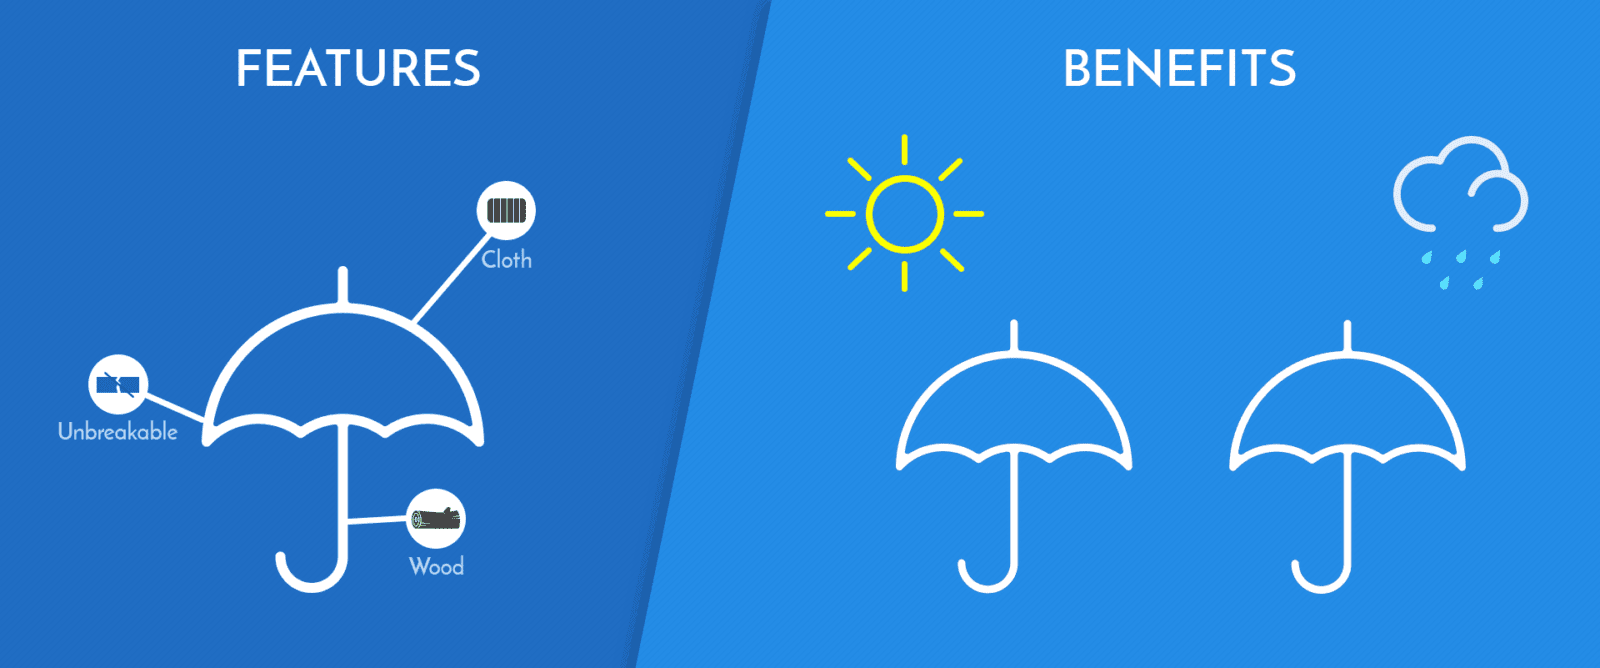 Features vs. Benefits